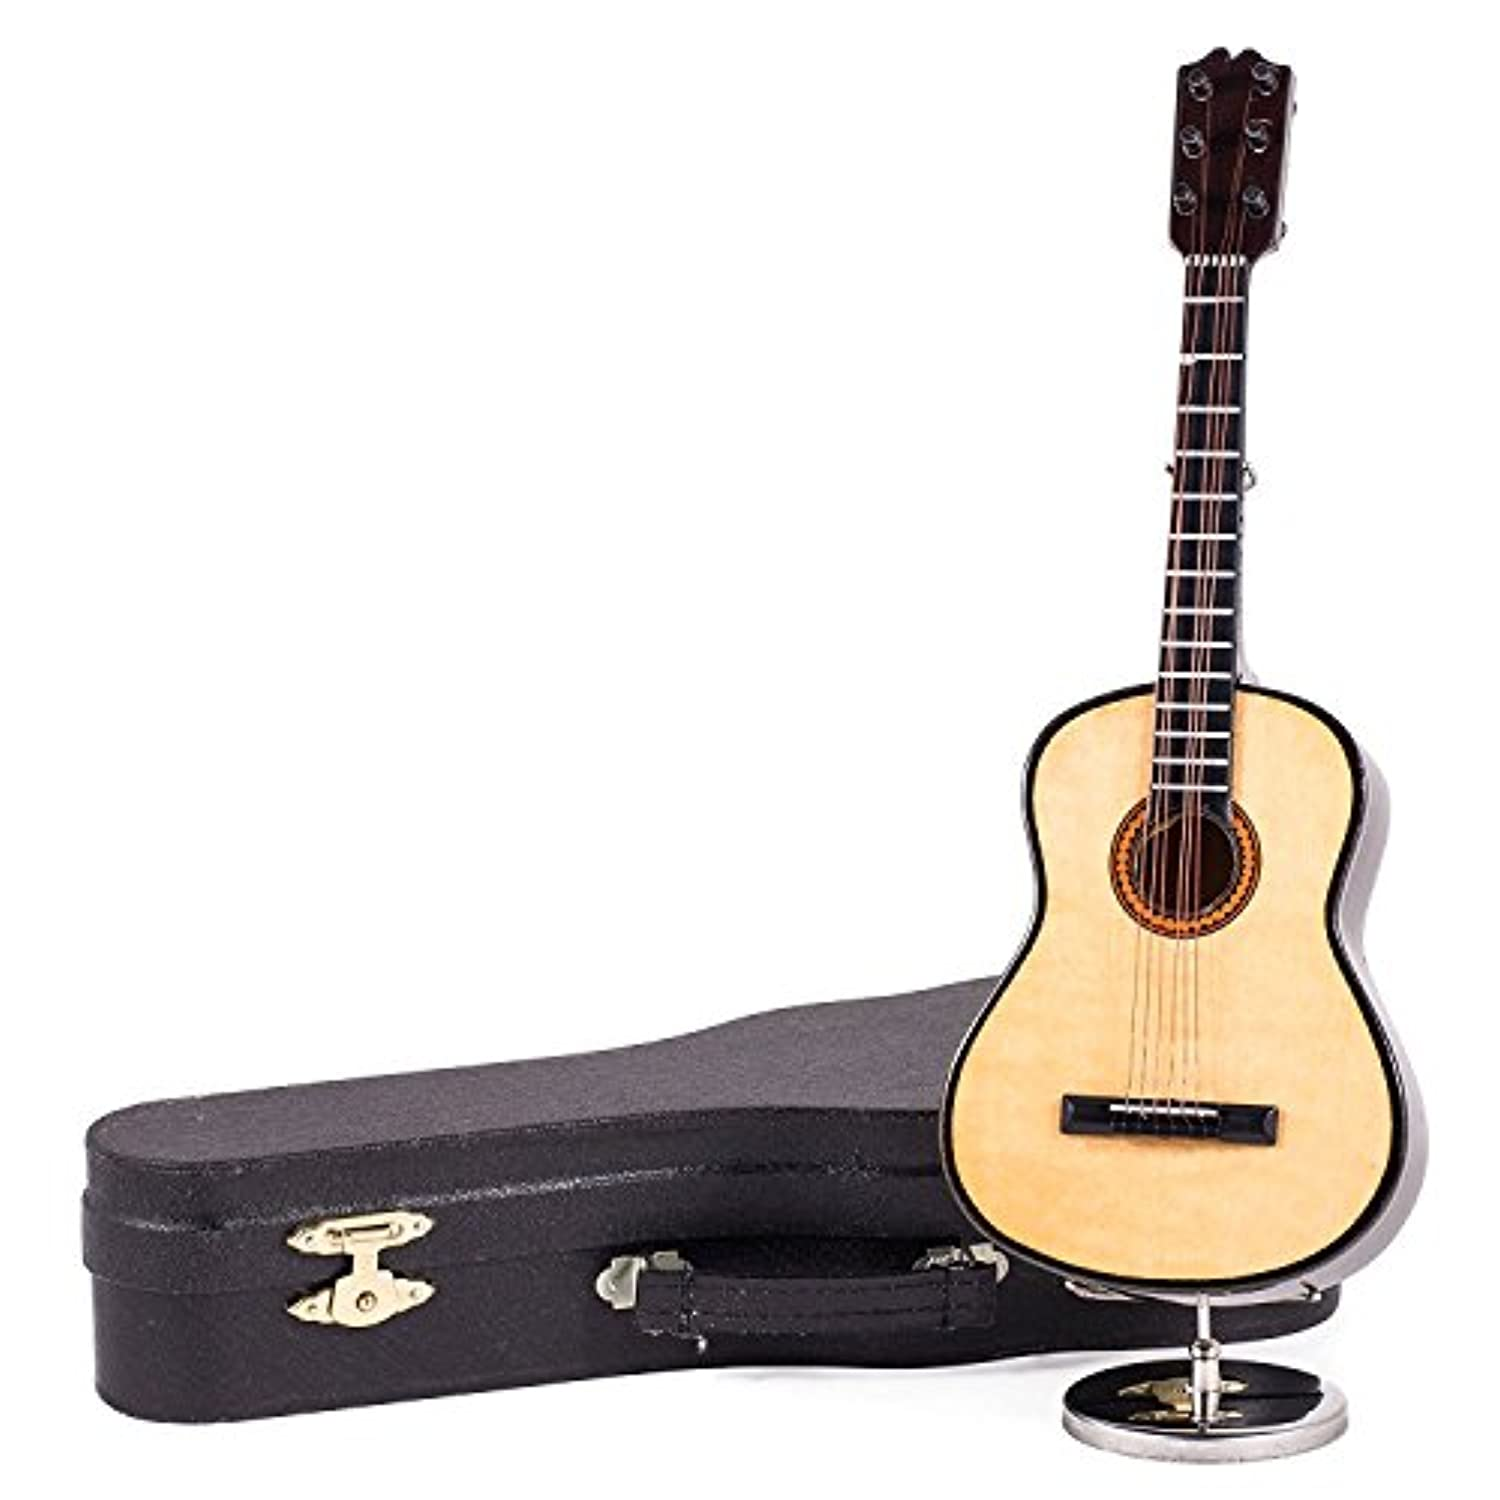 23cm Wooden Classic Steel String Guitar Music Box and Black Case - Plays Hey Jude